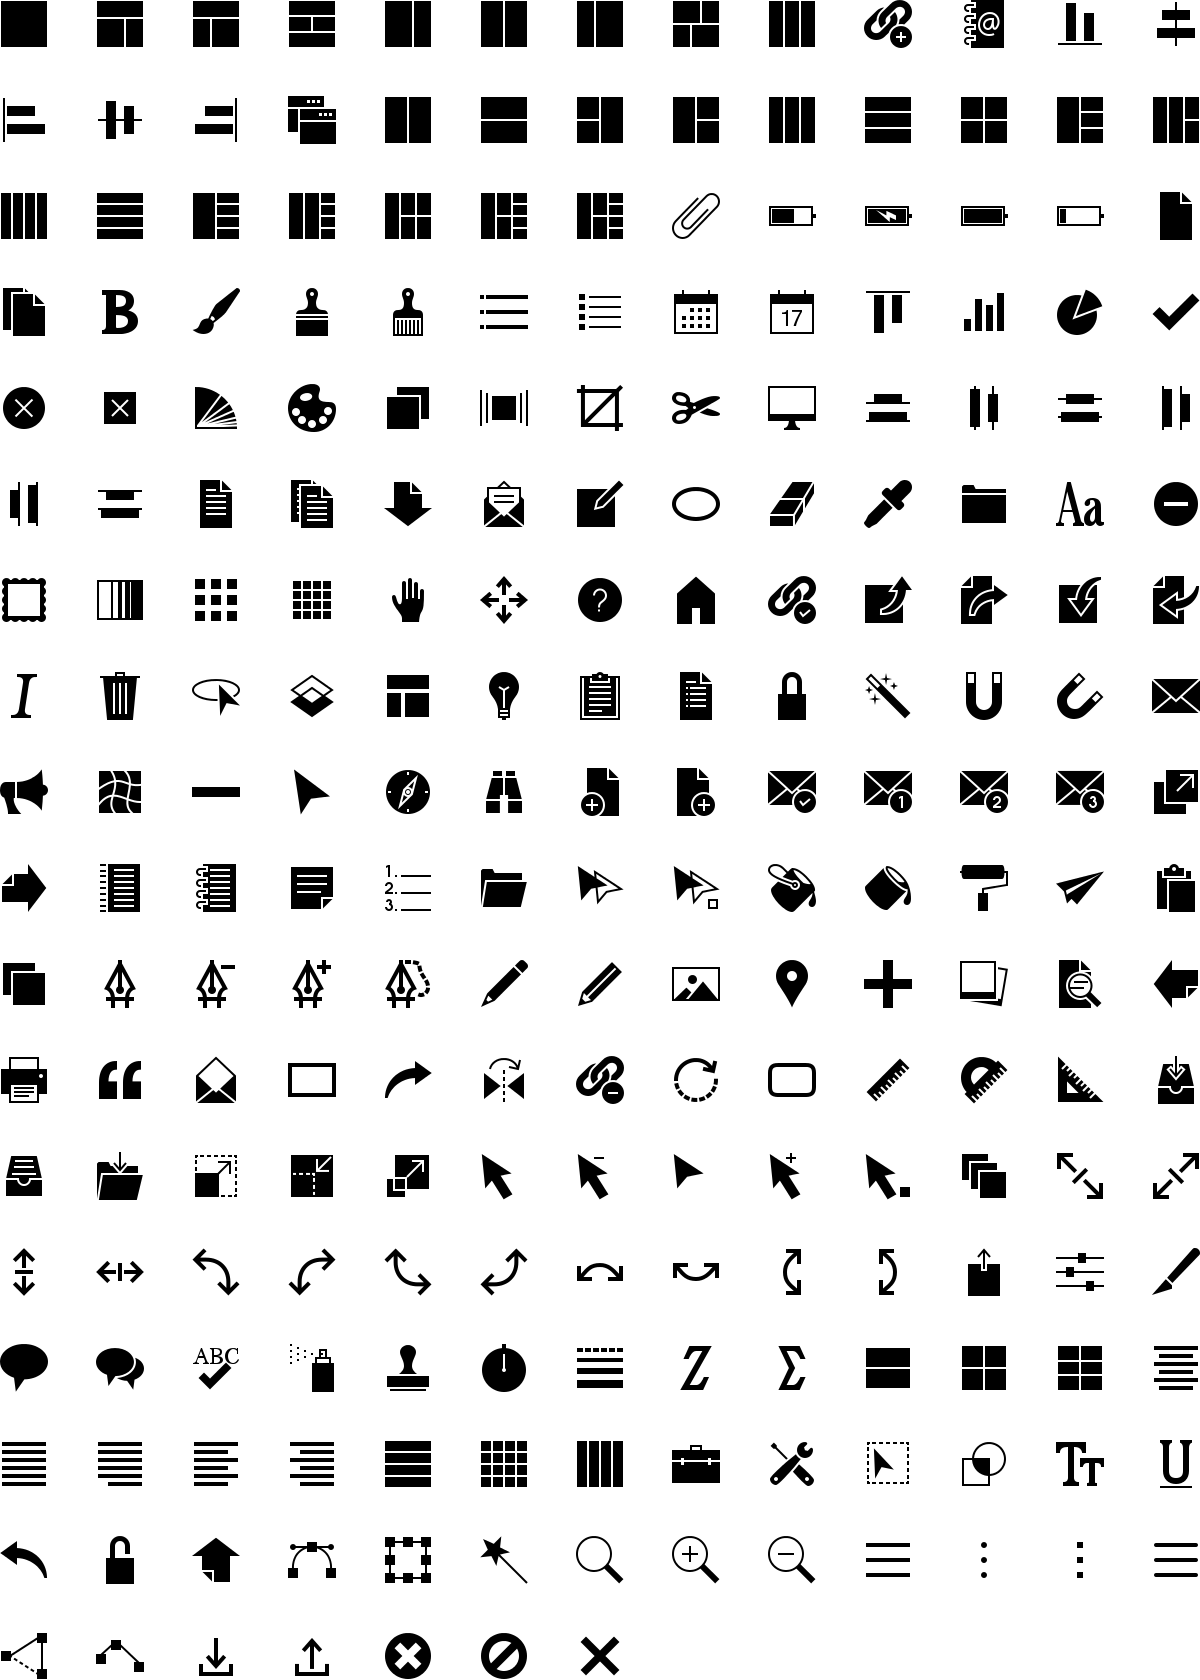 Software icons in fill style